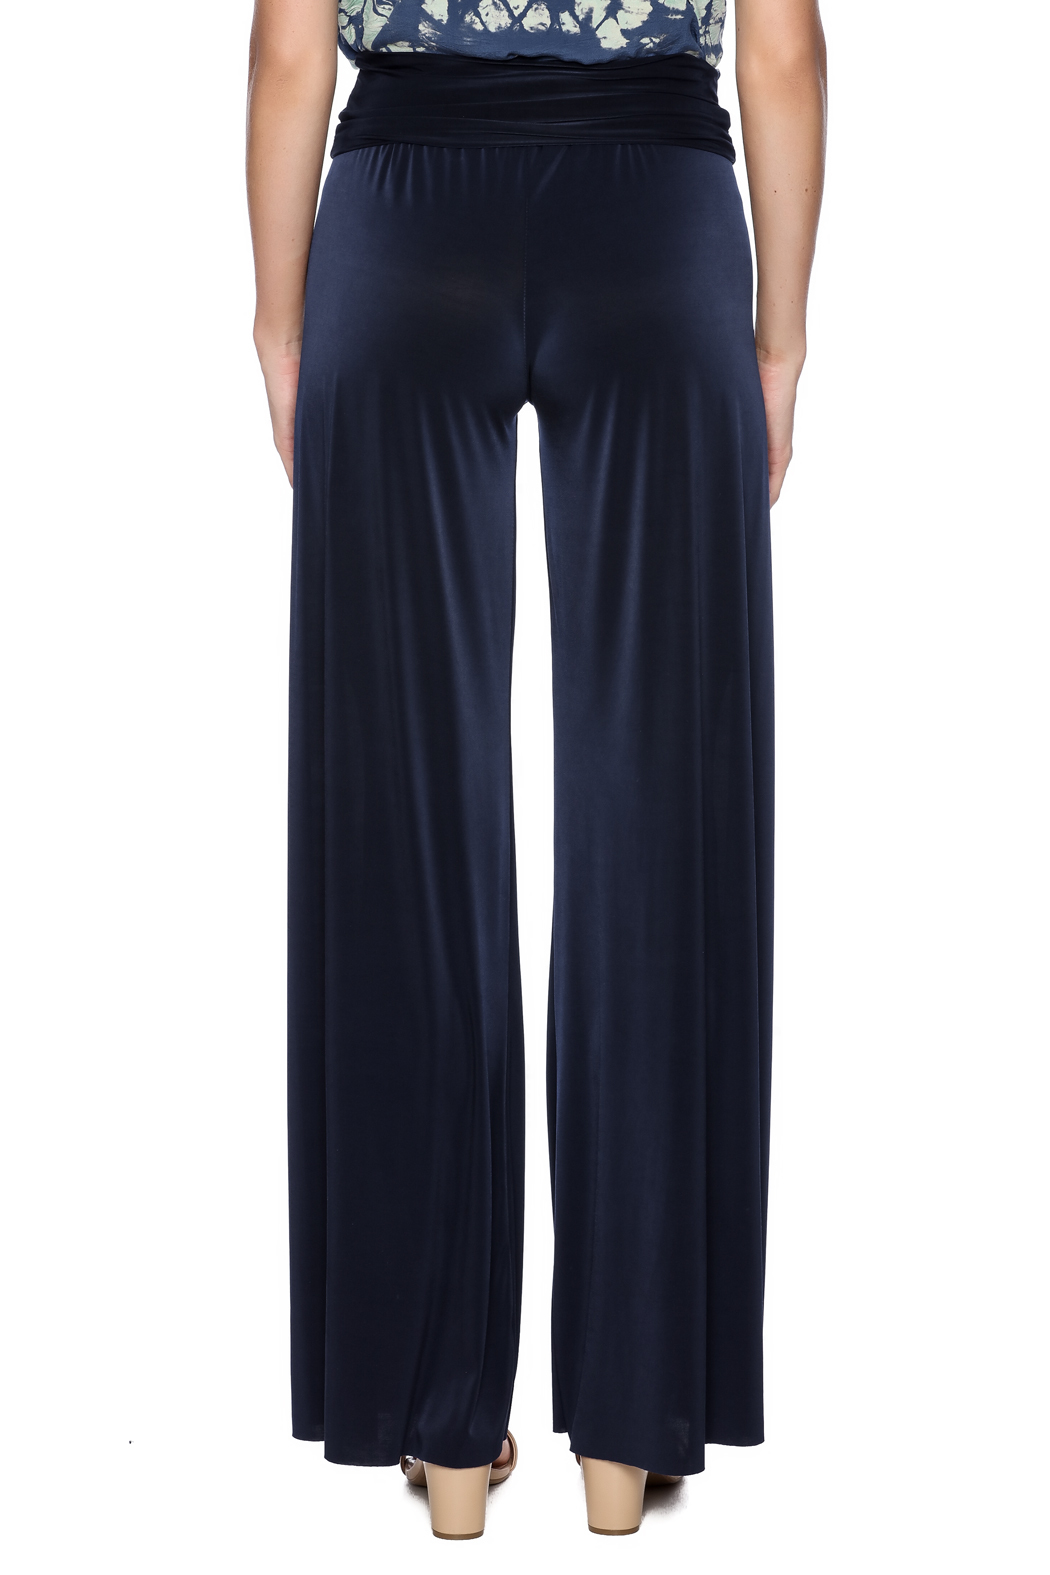 Uptown Navy Palazzo Pants - Back Cropped Image